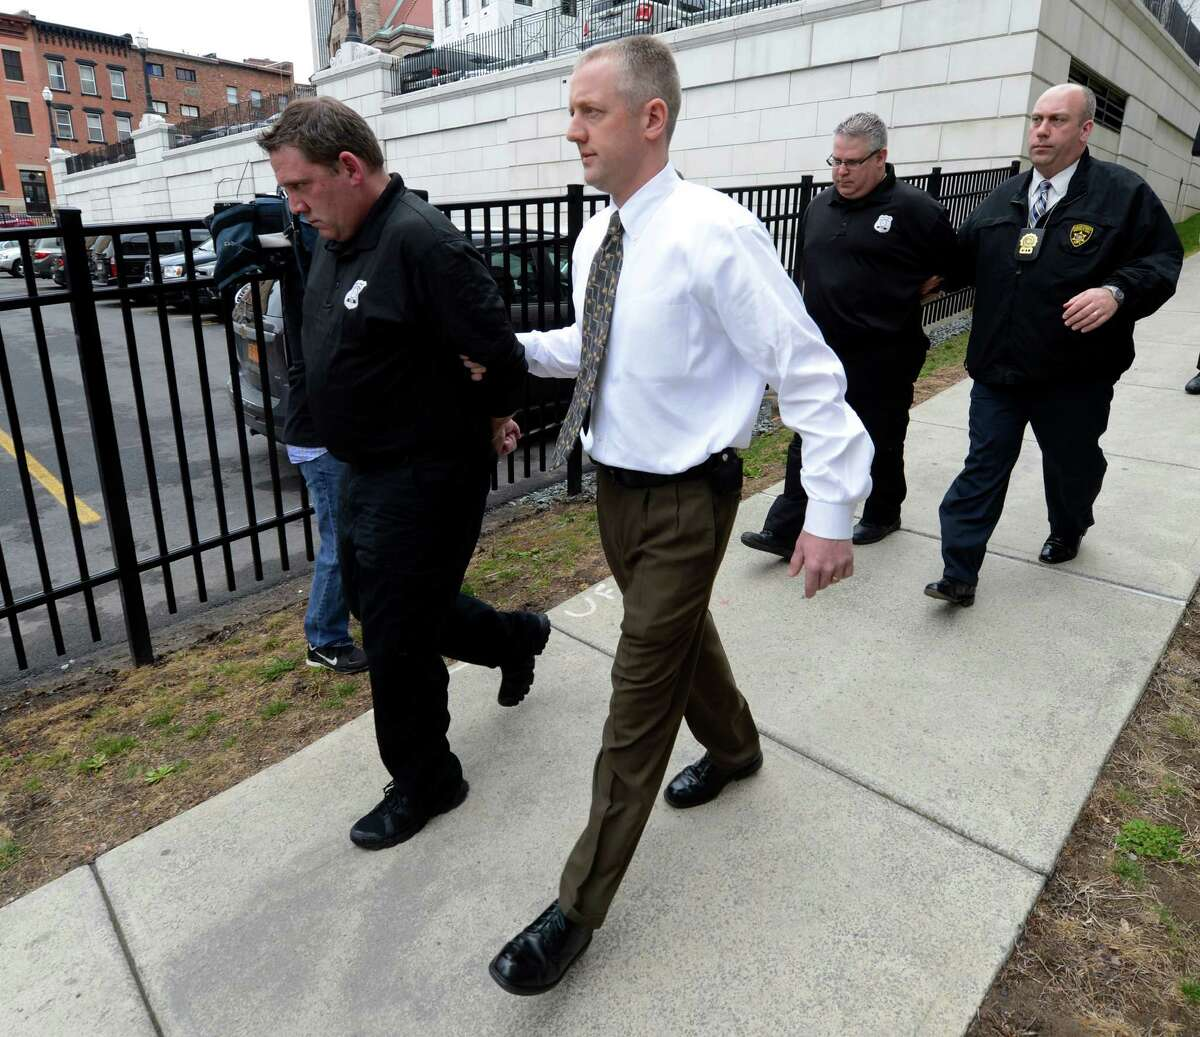 Albany County corrections officers Timothy Robillard, 44, left, and James Cerniglia, 47, right, both of Clifton Park, are escorted into the Albany County Judicial Center Wednesday, April 10, 2013. The officers are accused of running a Capital Region bookmaking ring in which bets and payoffs were routinely taking place at the jail. (Skip Dickstein/Times Union)